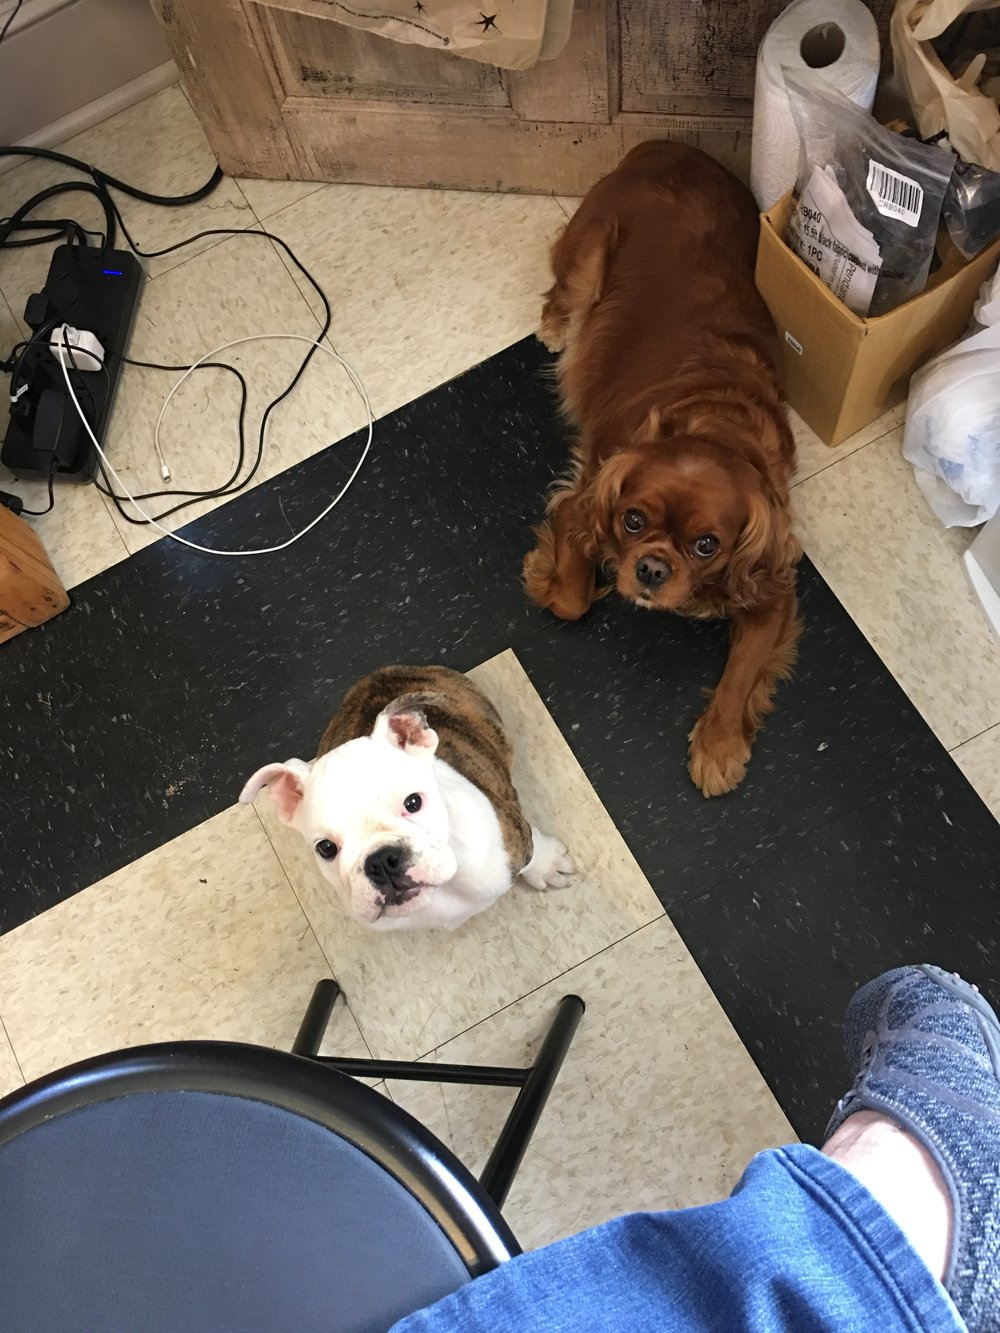 Are you a Dog Lover? - Bella and Tippy are also a part of our expert home decor team! Visit us to get their expert advice - or maybe just a friendly tail wag!